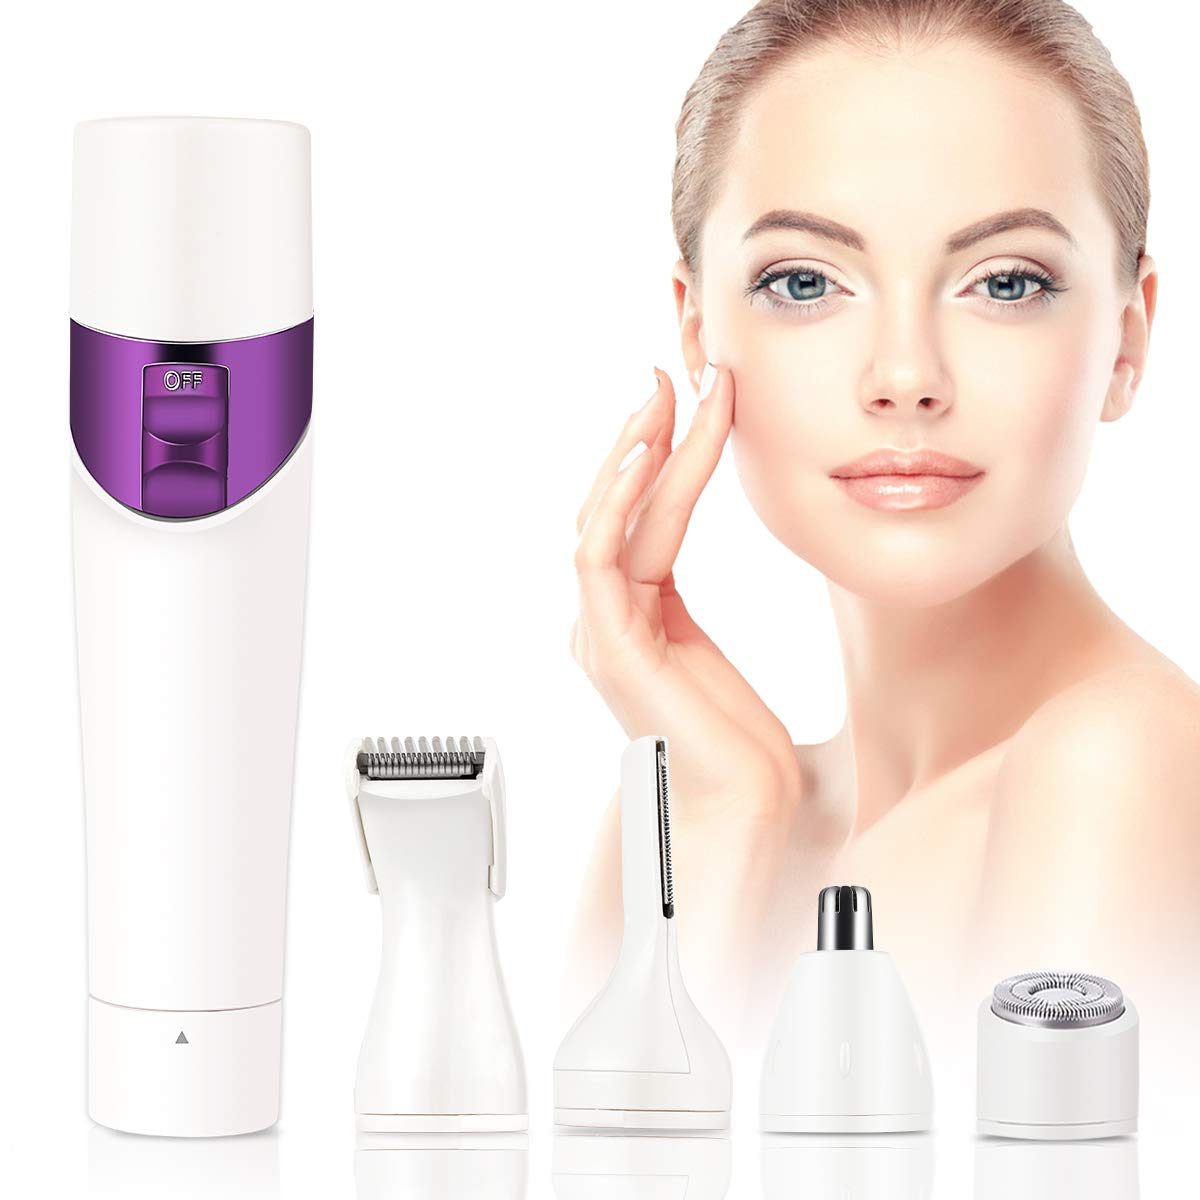 Veru ETERNITY Hair Remover, Painless 4 in 1 Hair Removal for Women No Tugging, Cuts, or Irritation, USB Charger